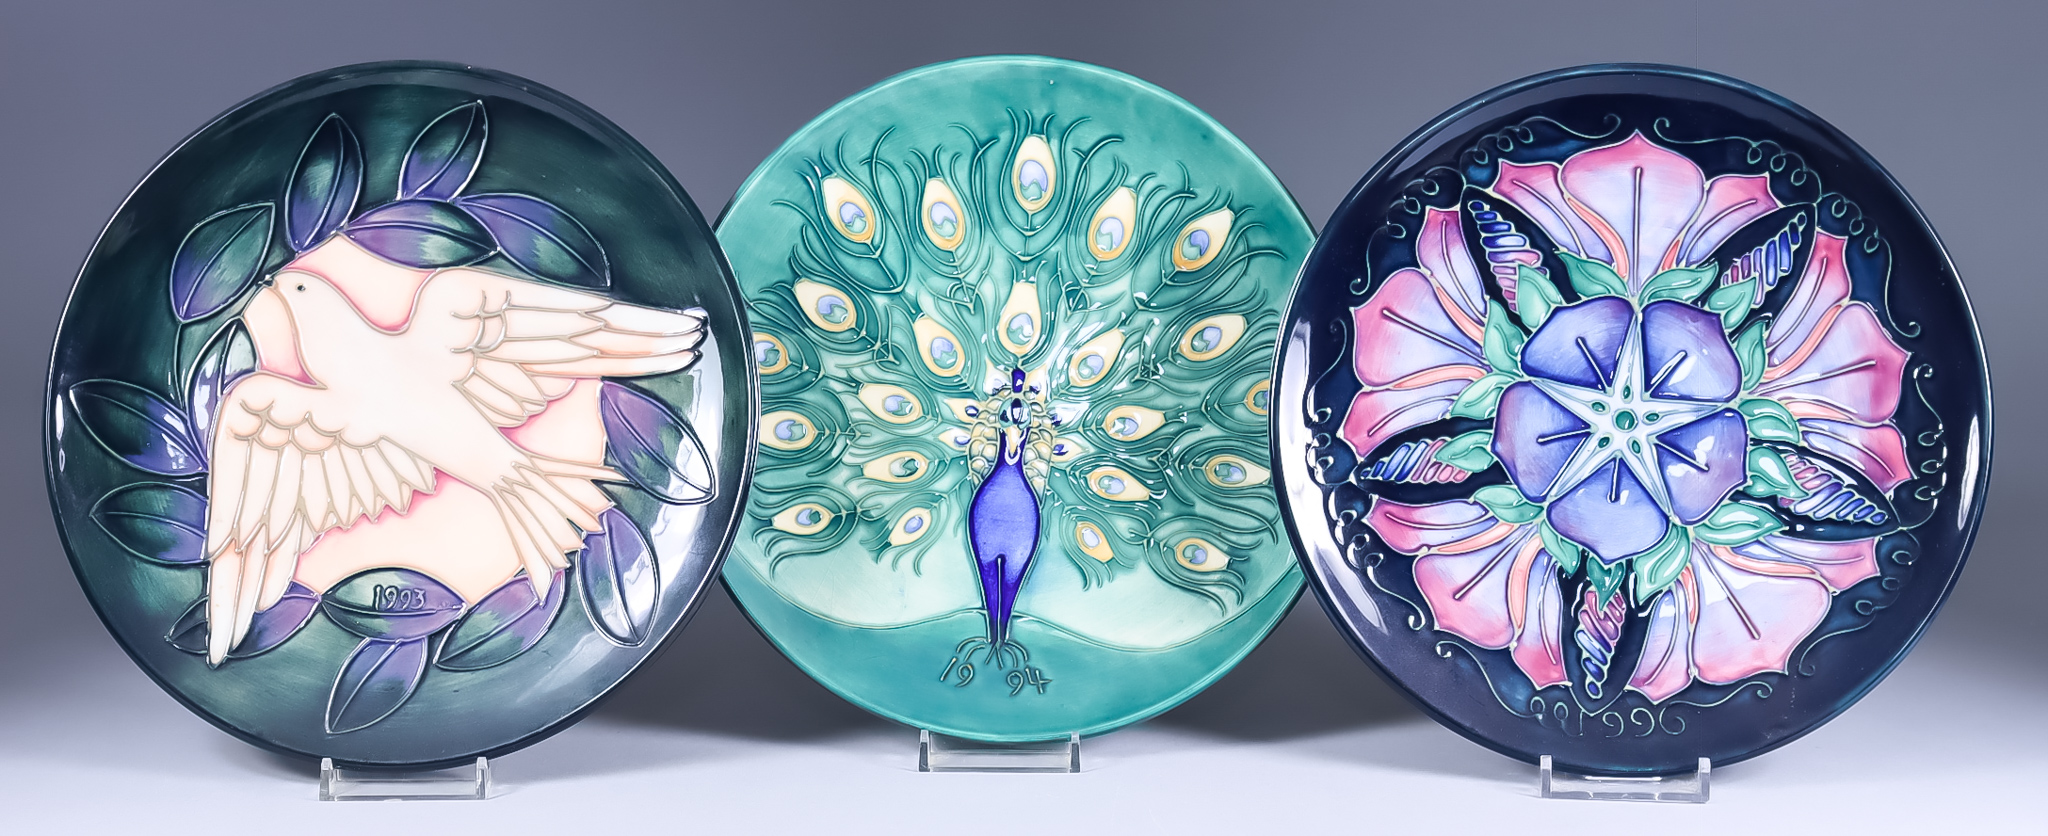 A Limited Edition Moorcroft Pottery Year Plate for 1993, No. 181 of 500, from Second Series,